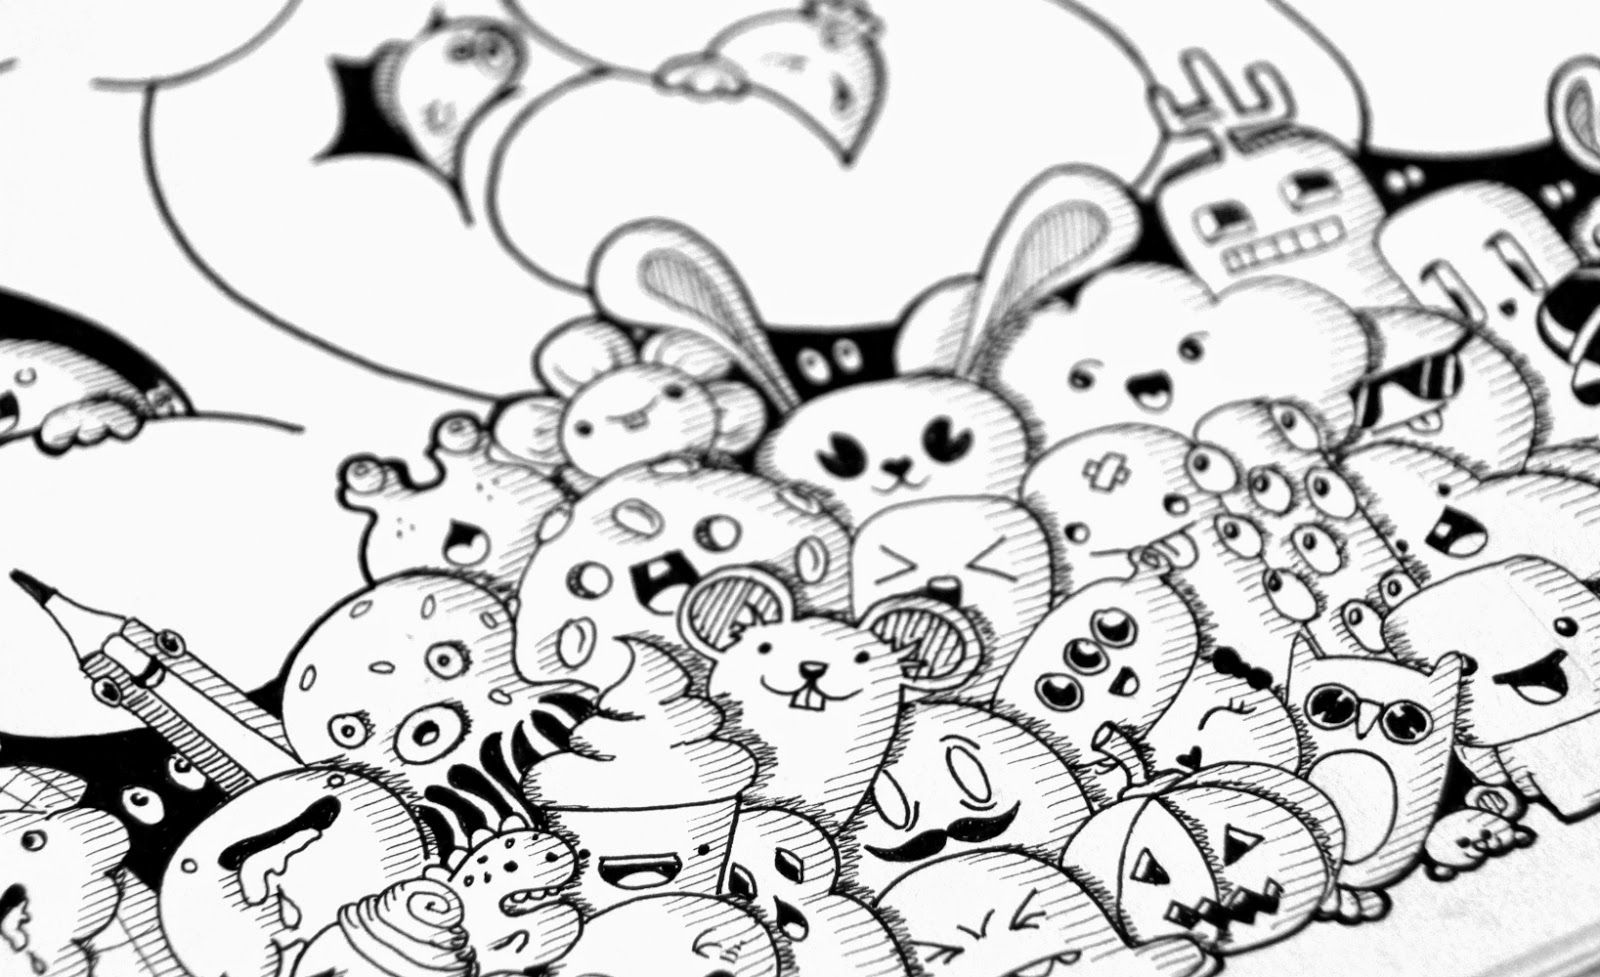 Thumbs up cartoons animals art characters cloud for Doodle characters